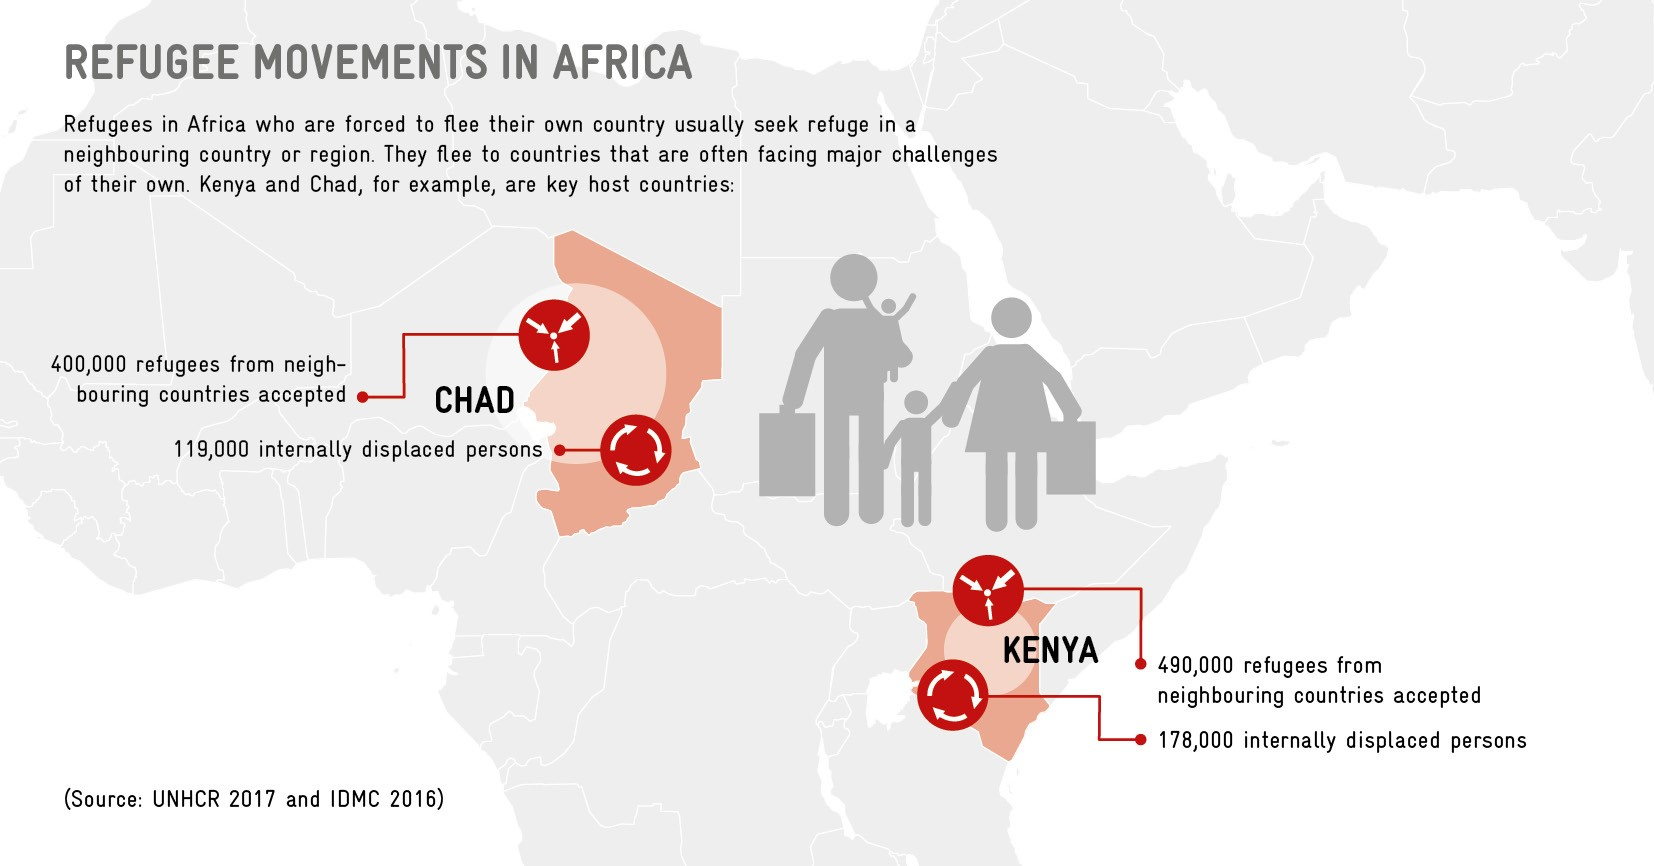 Refugee movements in Africa